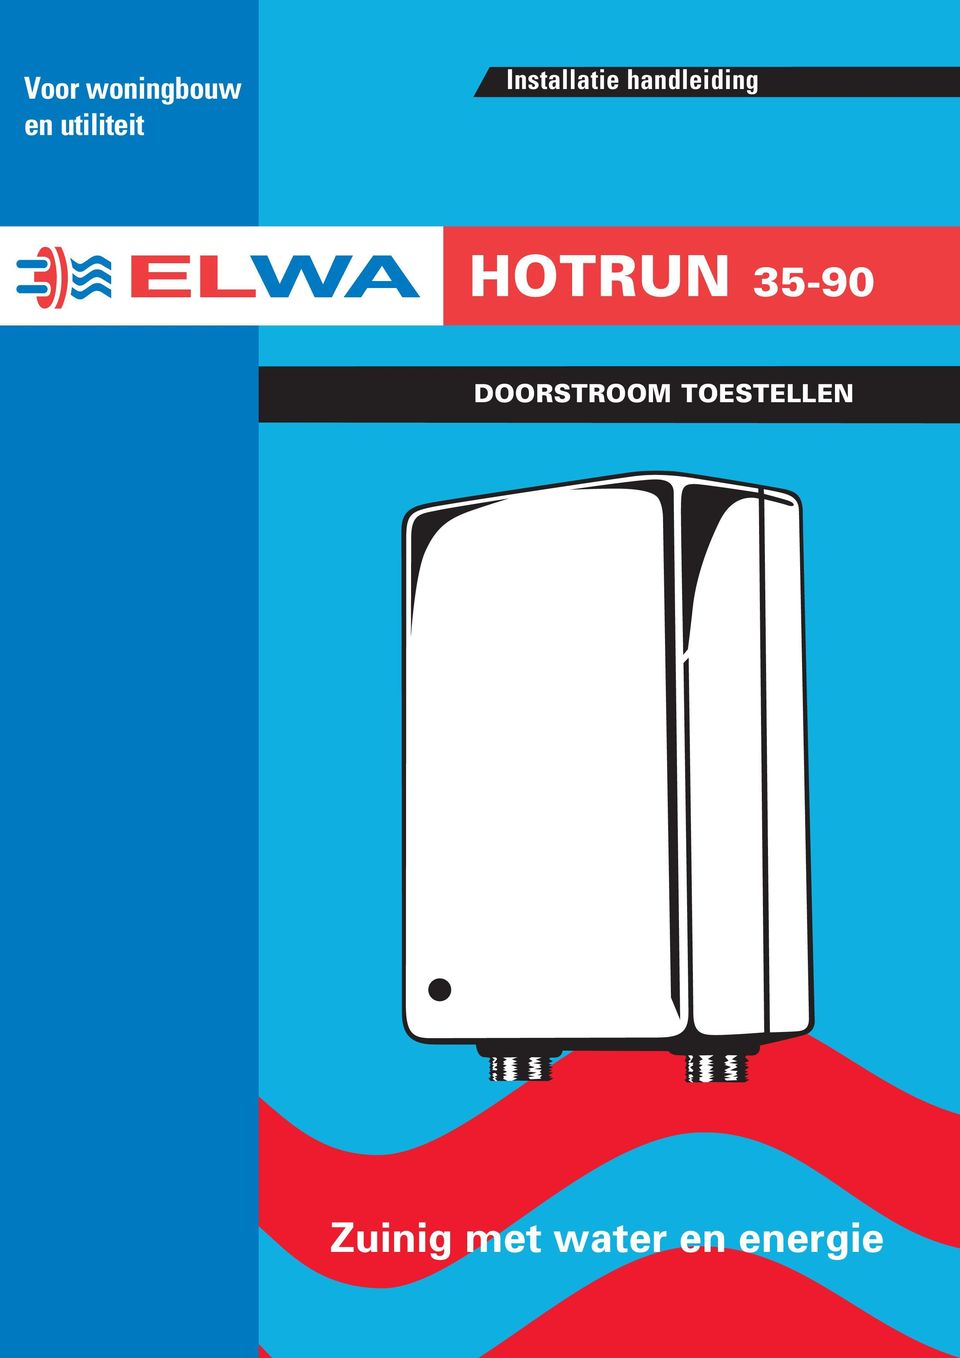 HOTRUN 35-90 DOORSTROOM